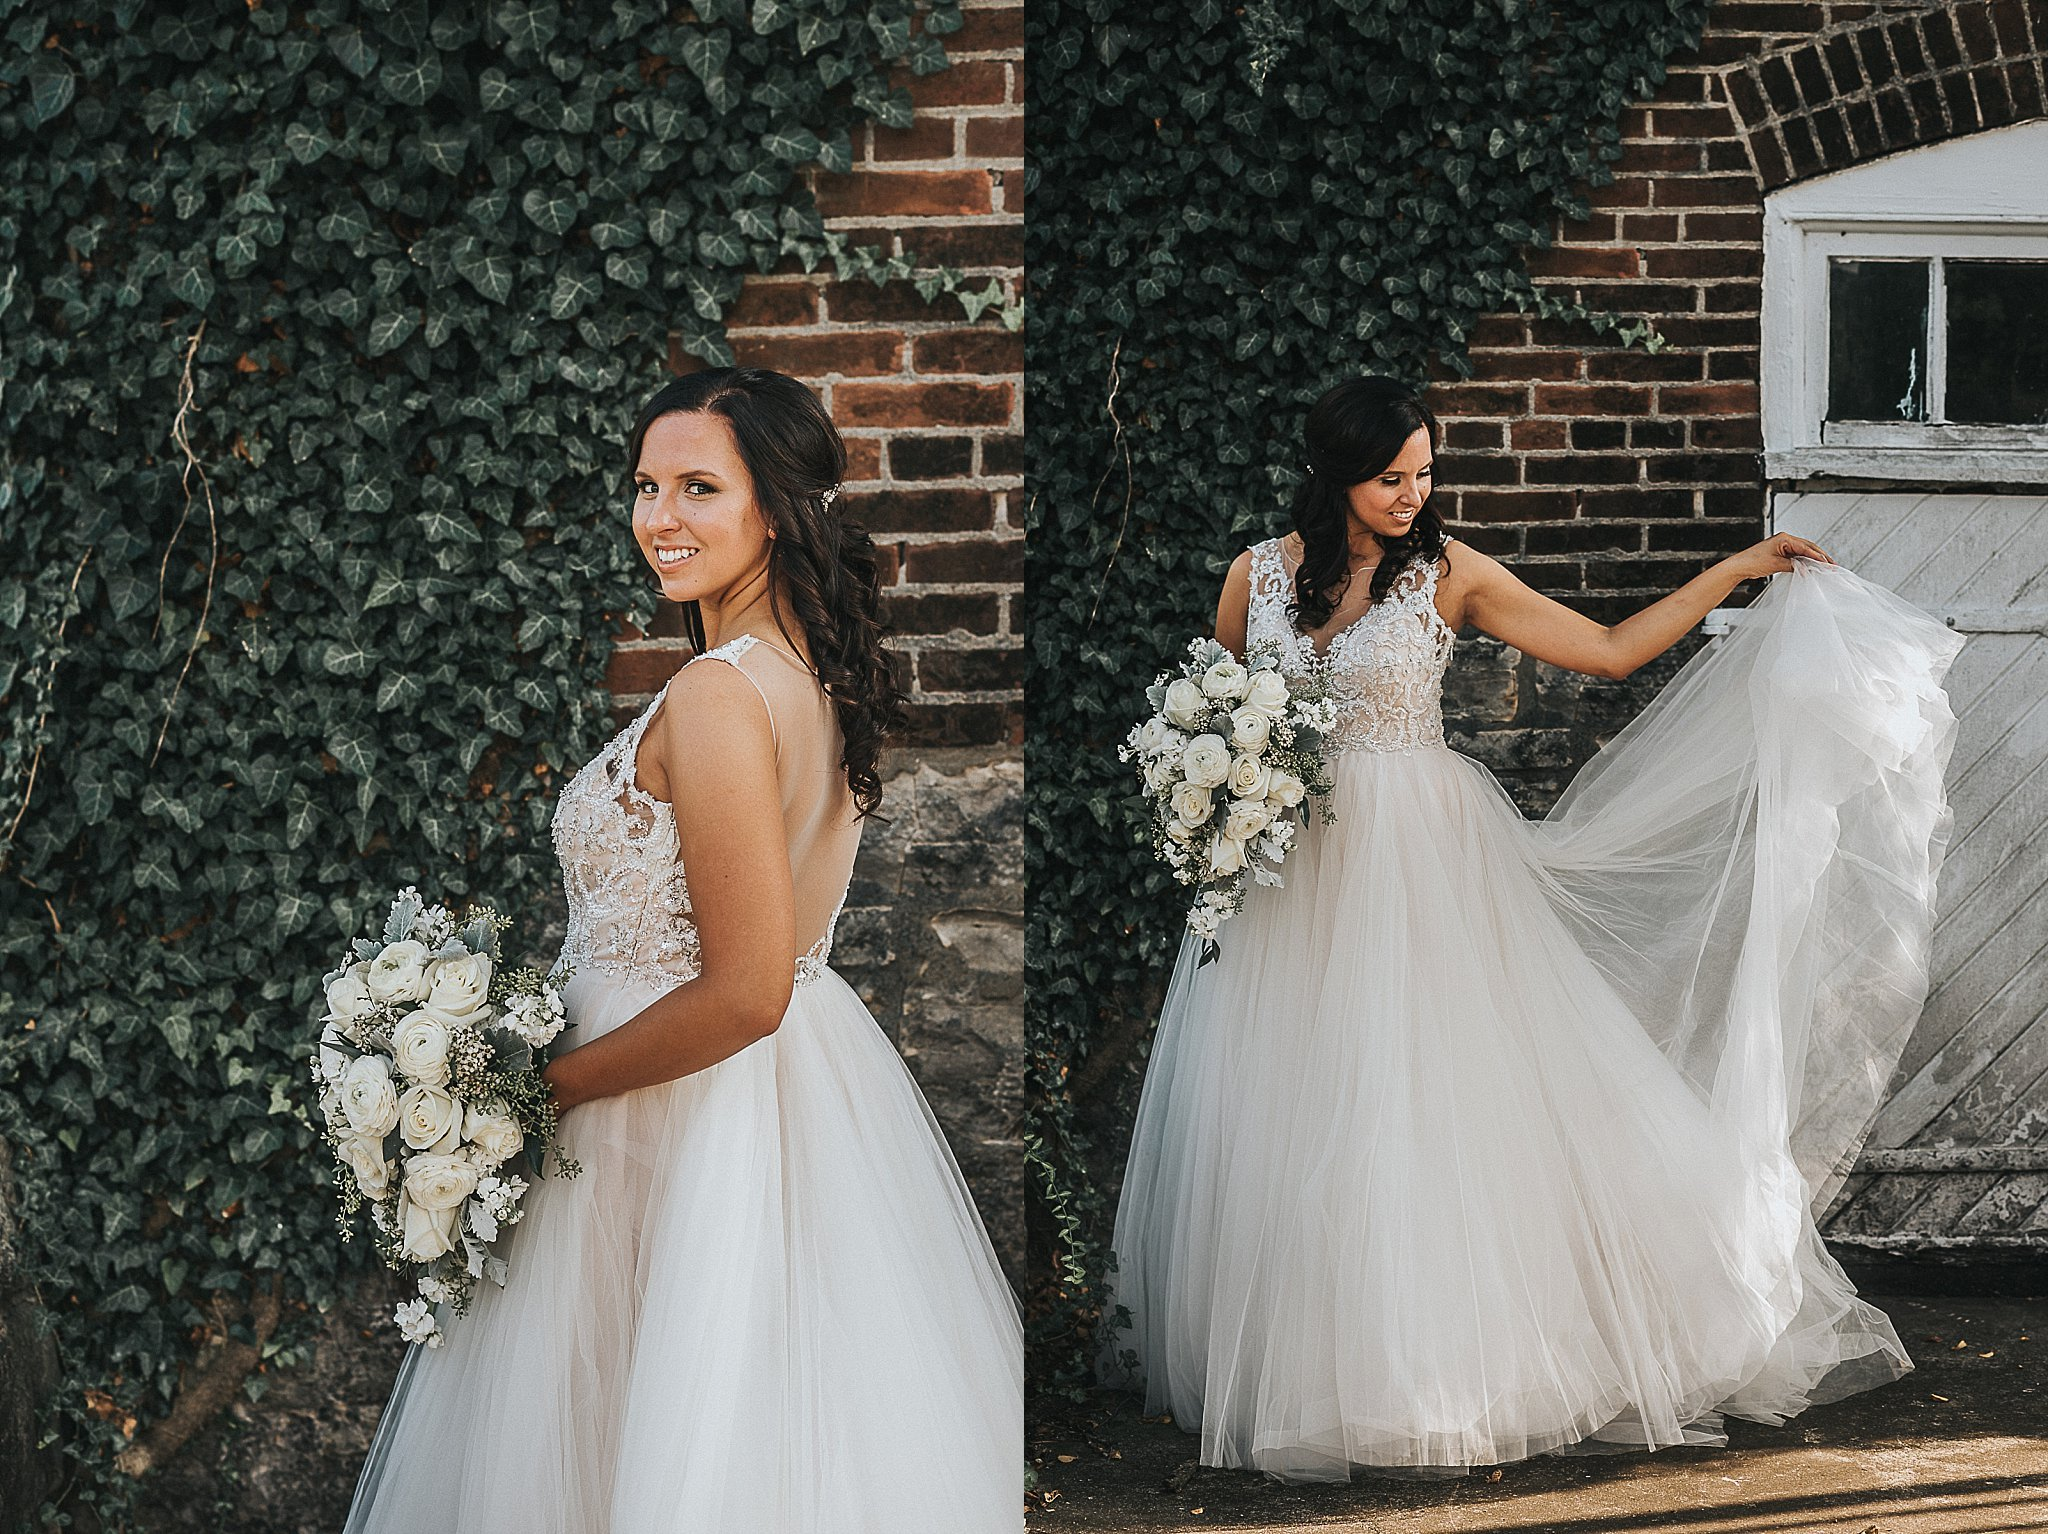 Bride photos in St. Louis